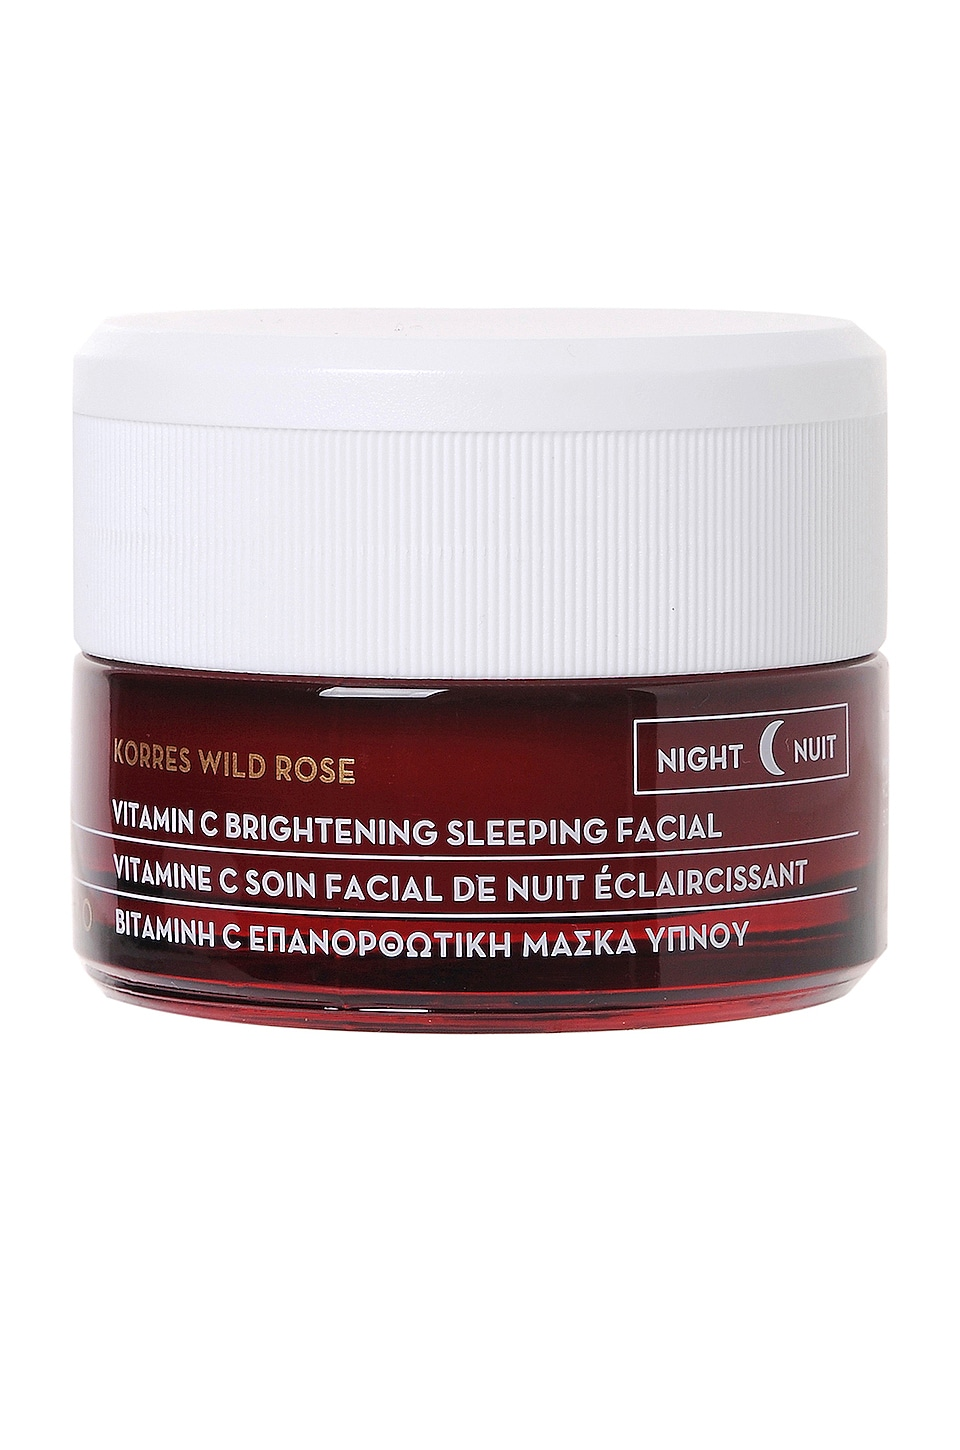 Korres Wild Rose Vitamin C Brightening Sleeping Facial